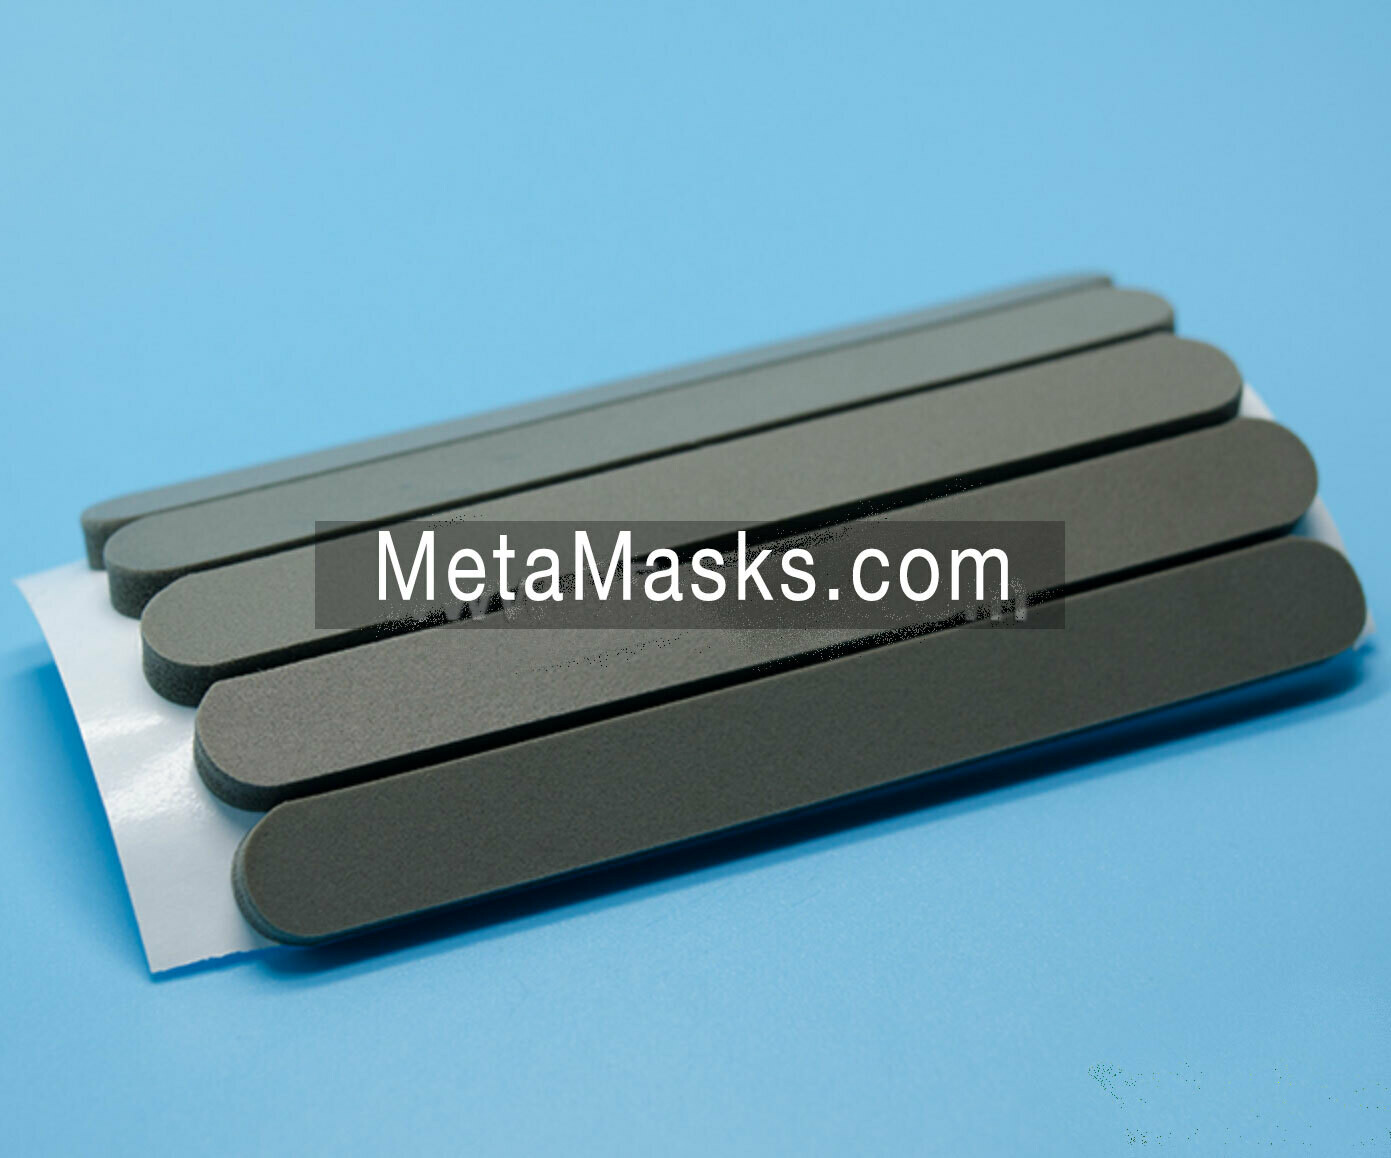 Nose pads for face mask, reduce air leakage & add comfort.